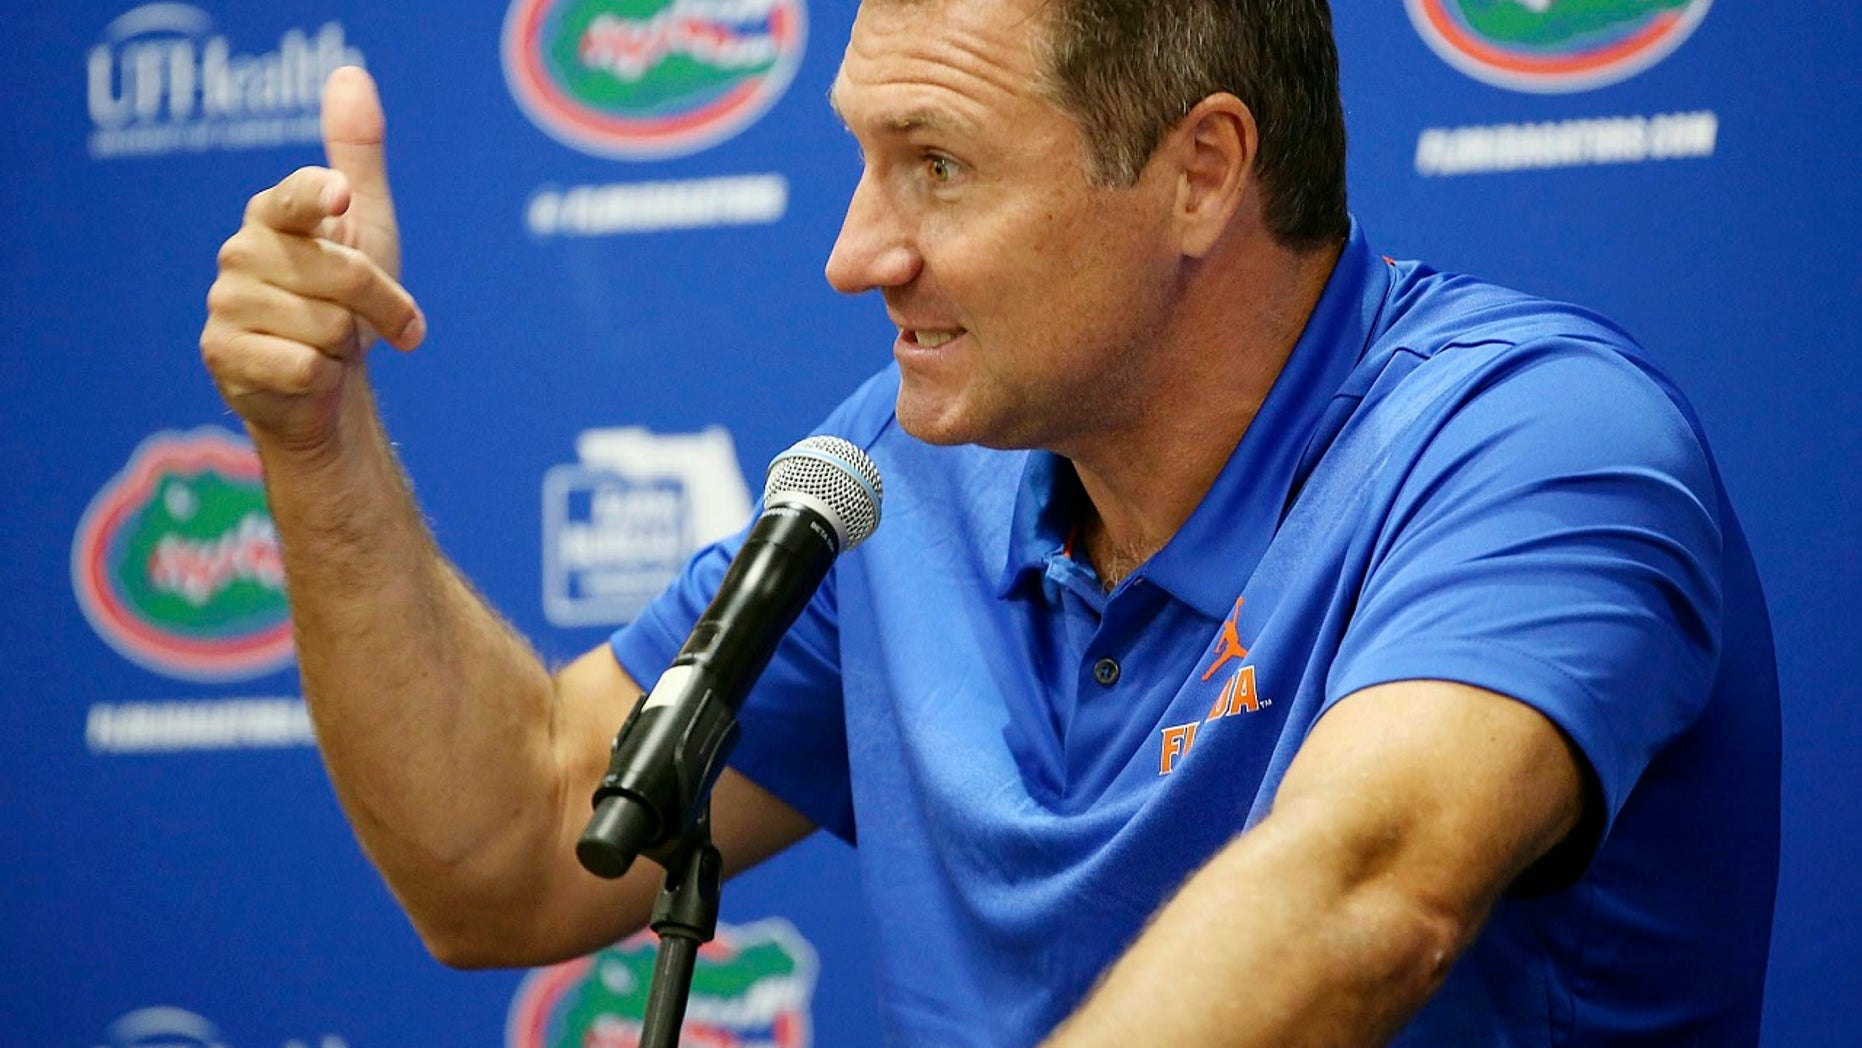 Florida Gators head coach Dan Mullen clarified his no-guns policy during a team media day on Thursday.